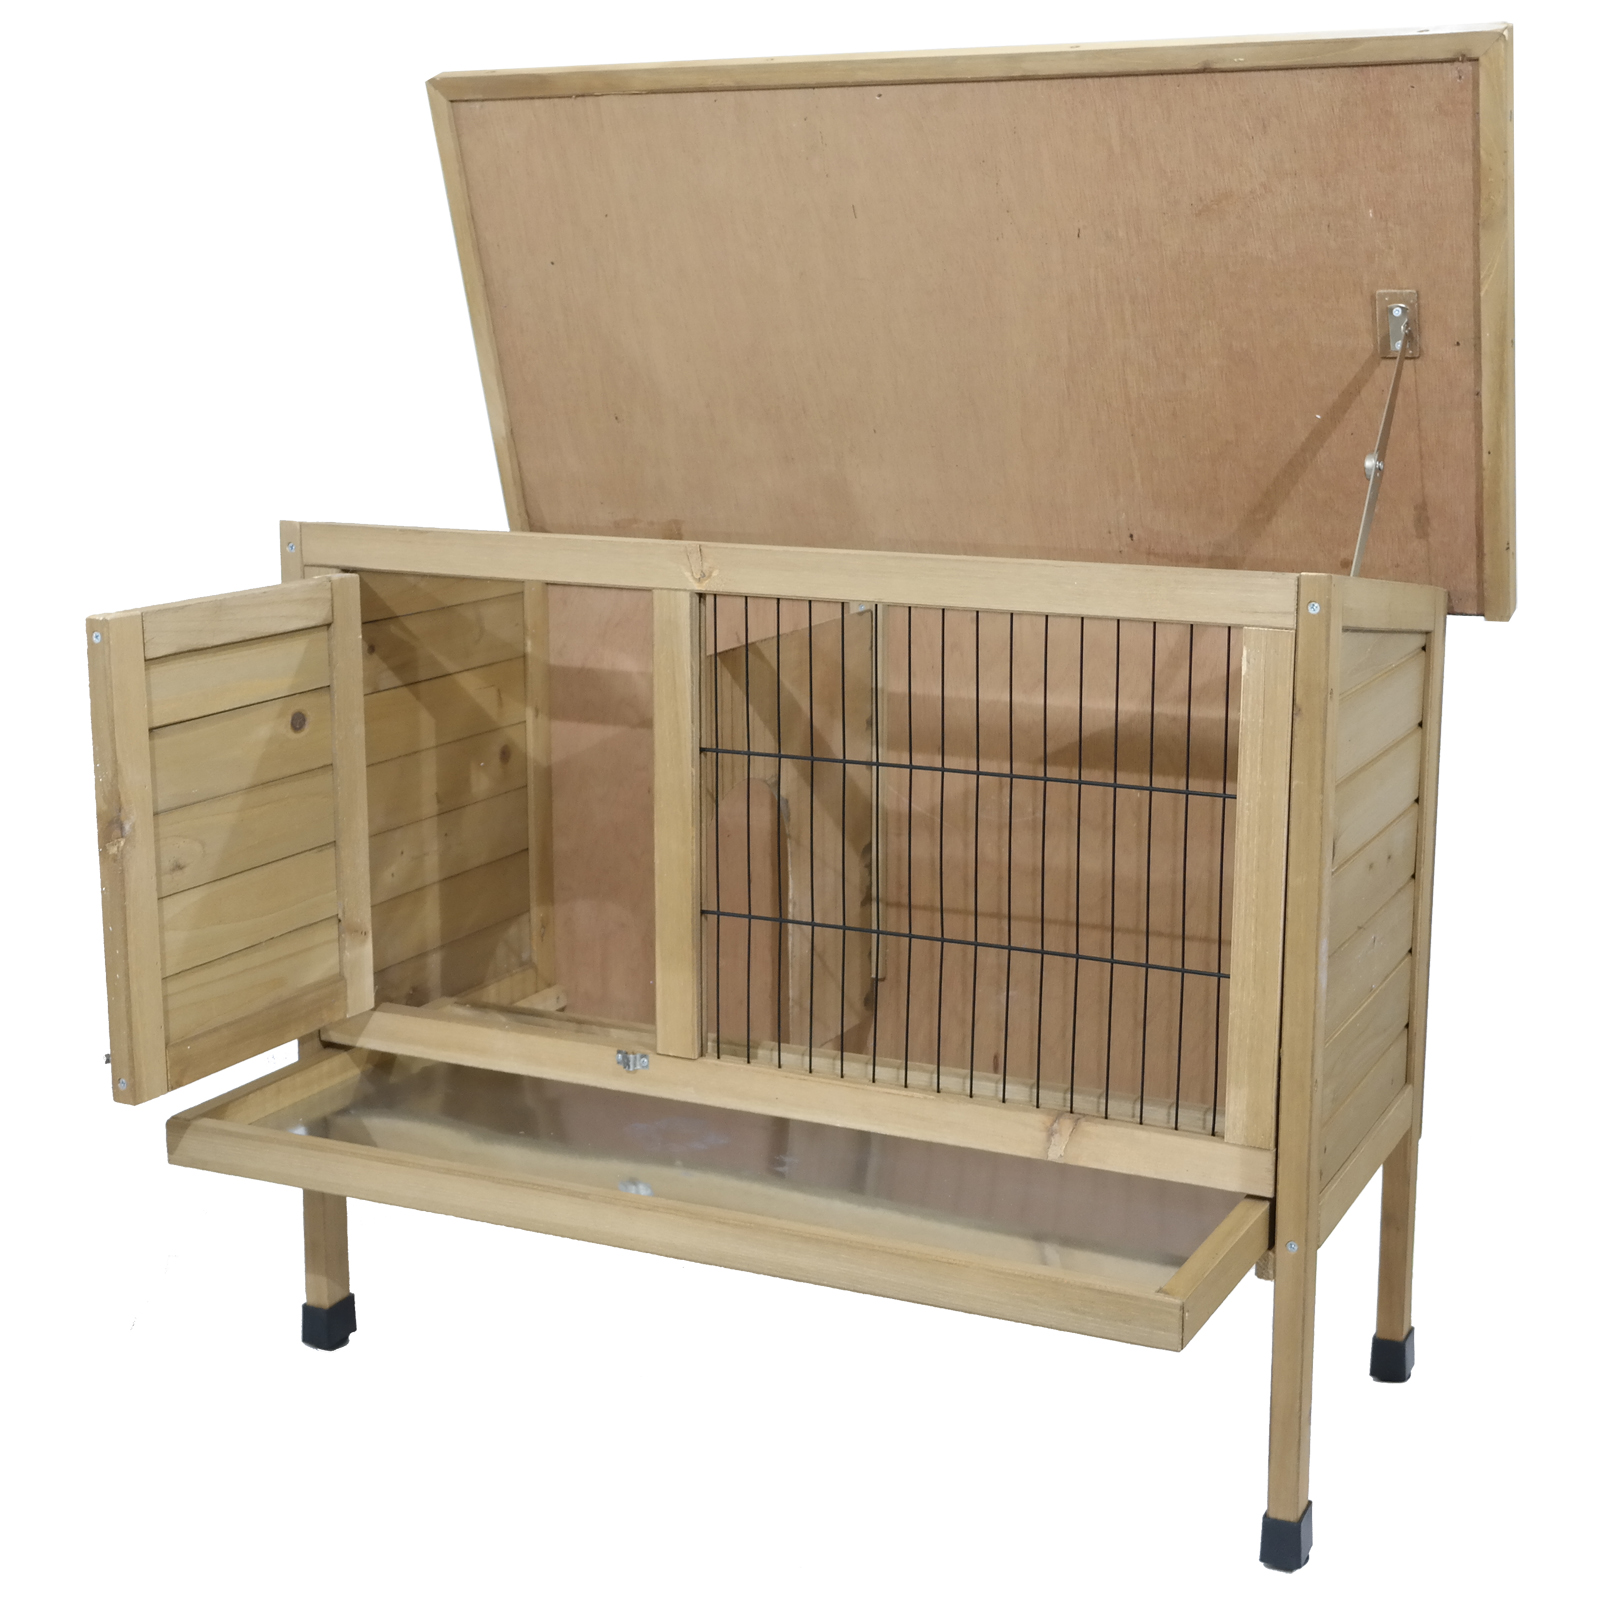 Extra large rabbit hutch cage guinea pet house run 92cm w for Extra large rabbit cage